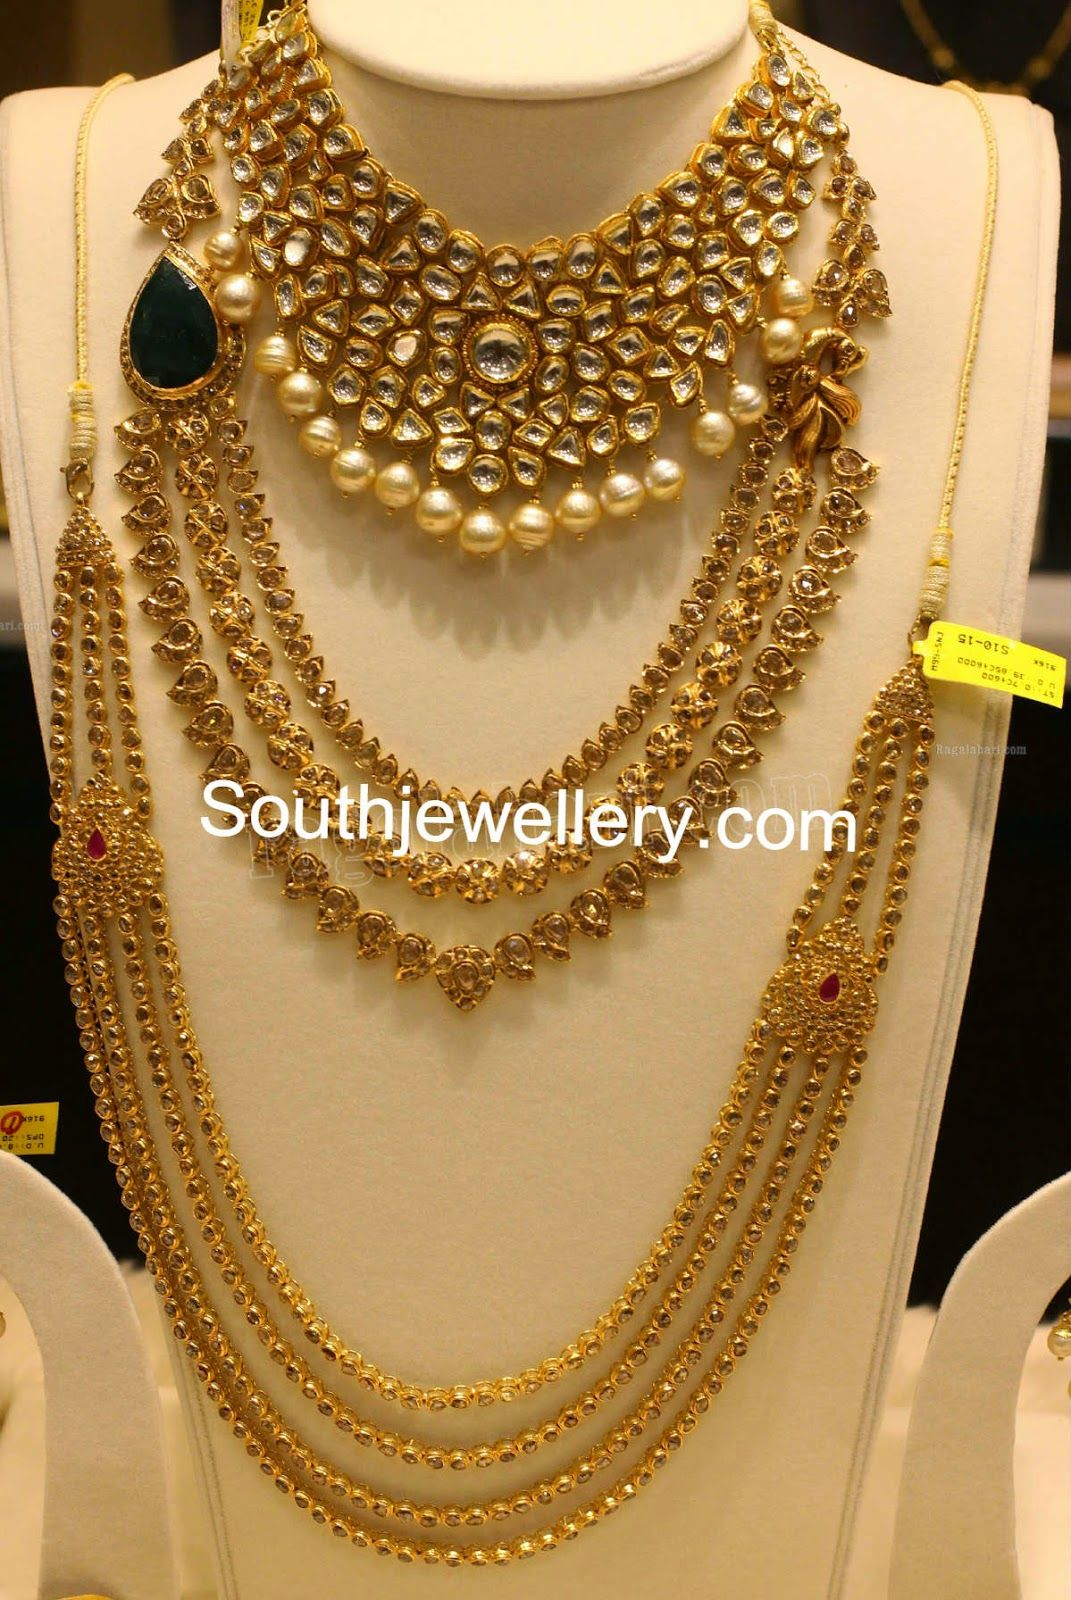 malabar gold and diamonds - Google Search | Bollywood Jewellery ...